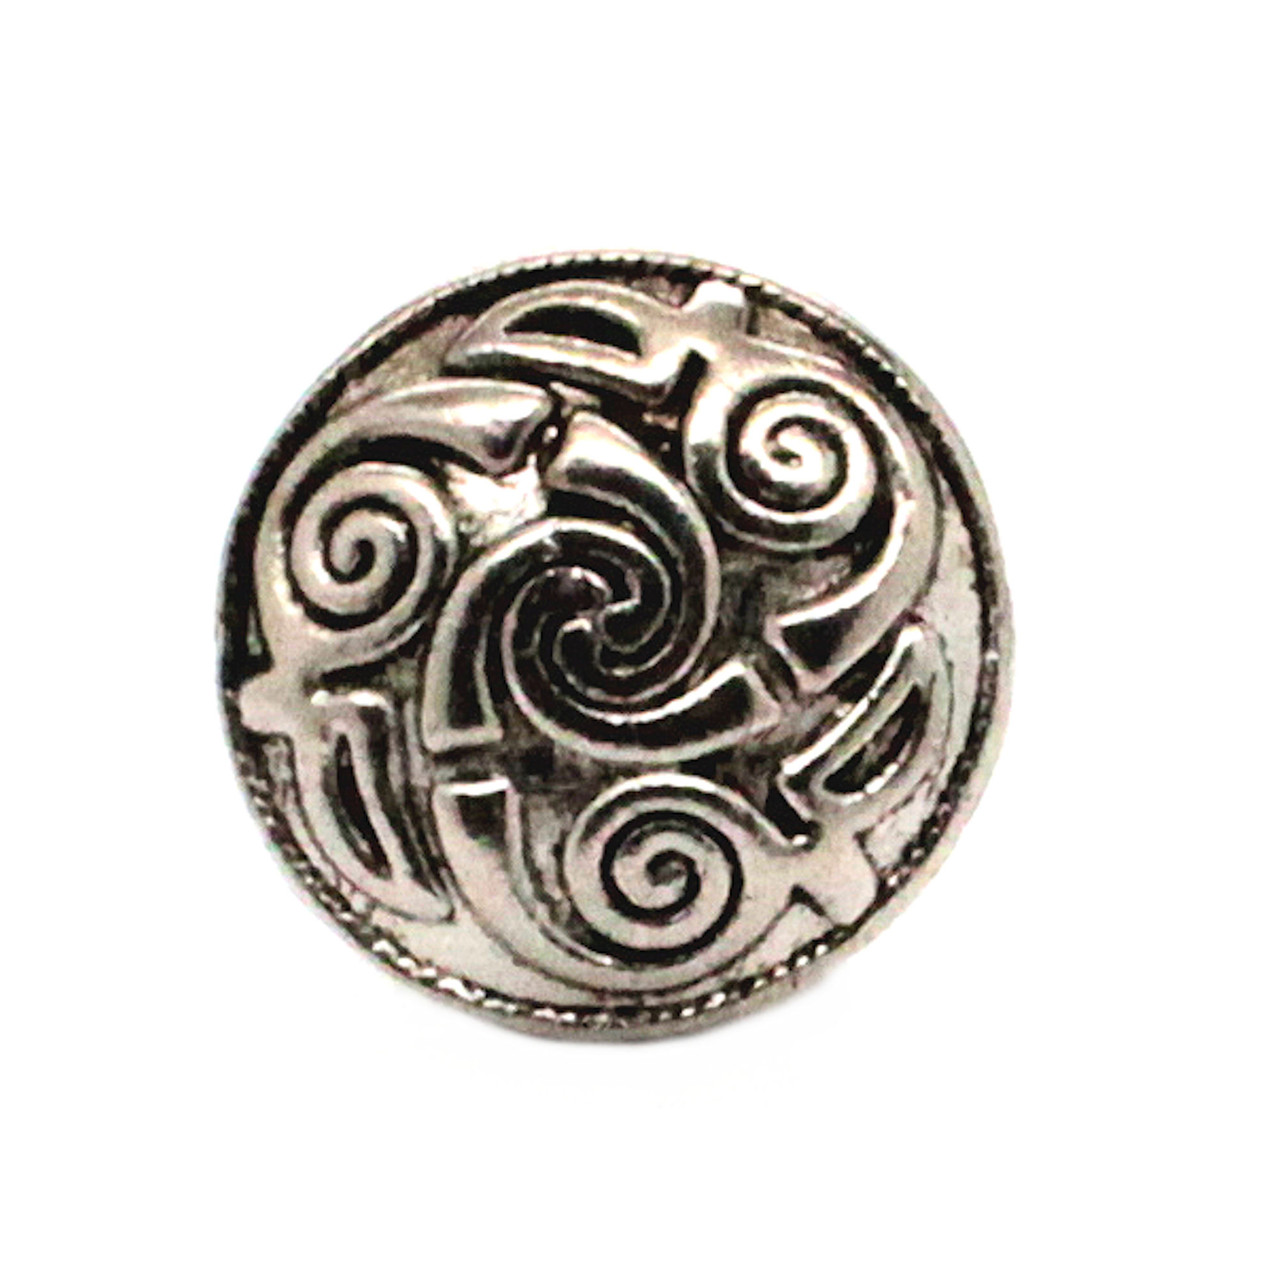 "Celtic Button Antique Nickel 7/8"" Front"